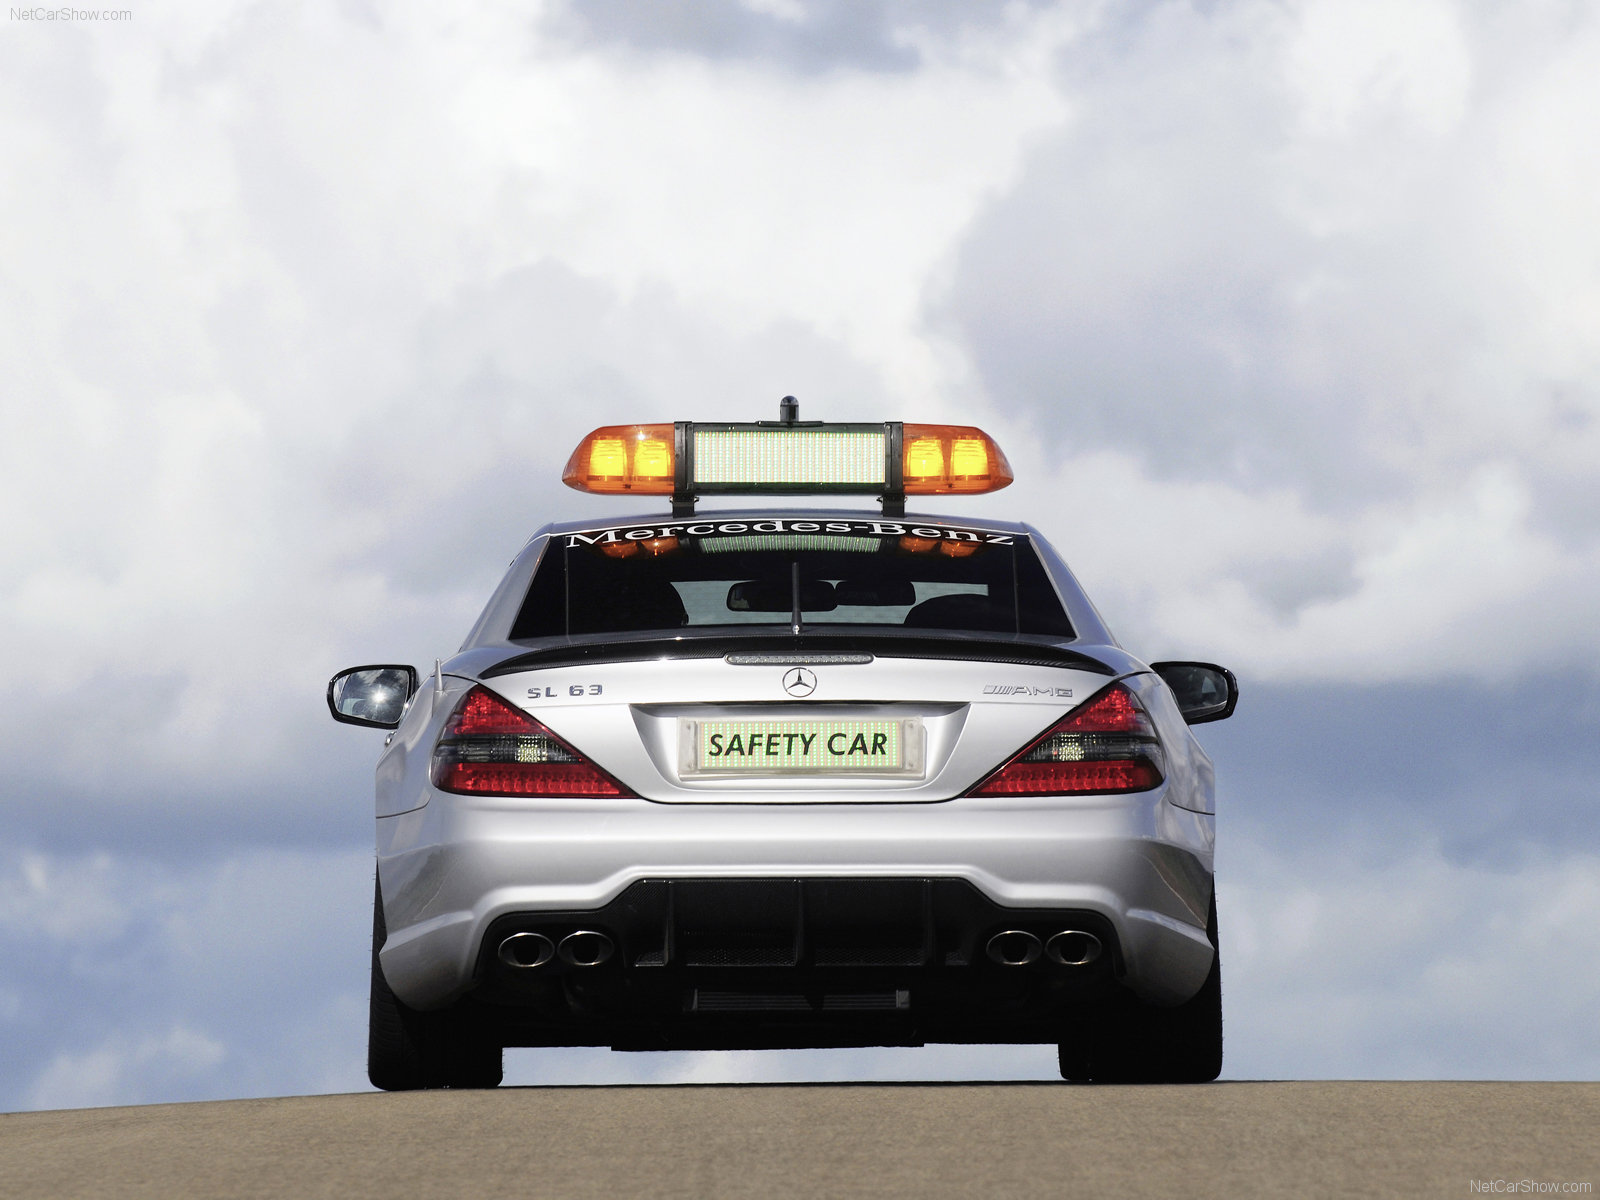 Mercedes-Benz SL63 AMG F1 Safety Car photo #63065